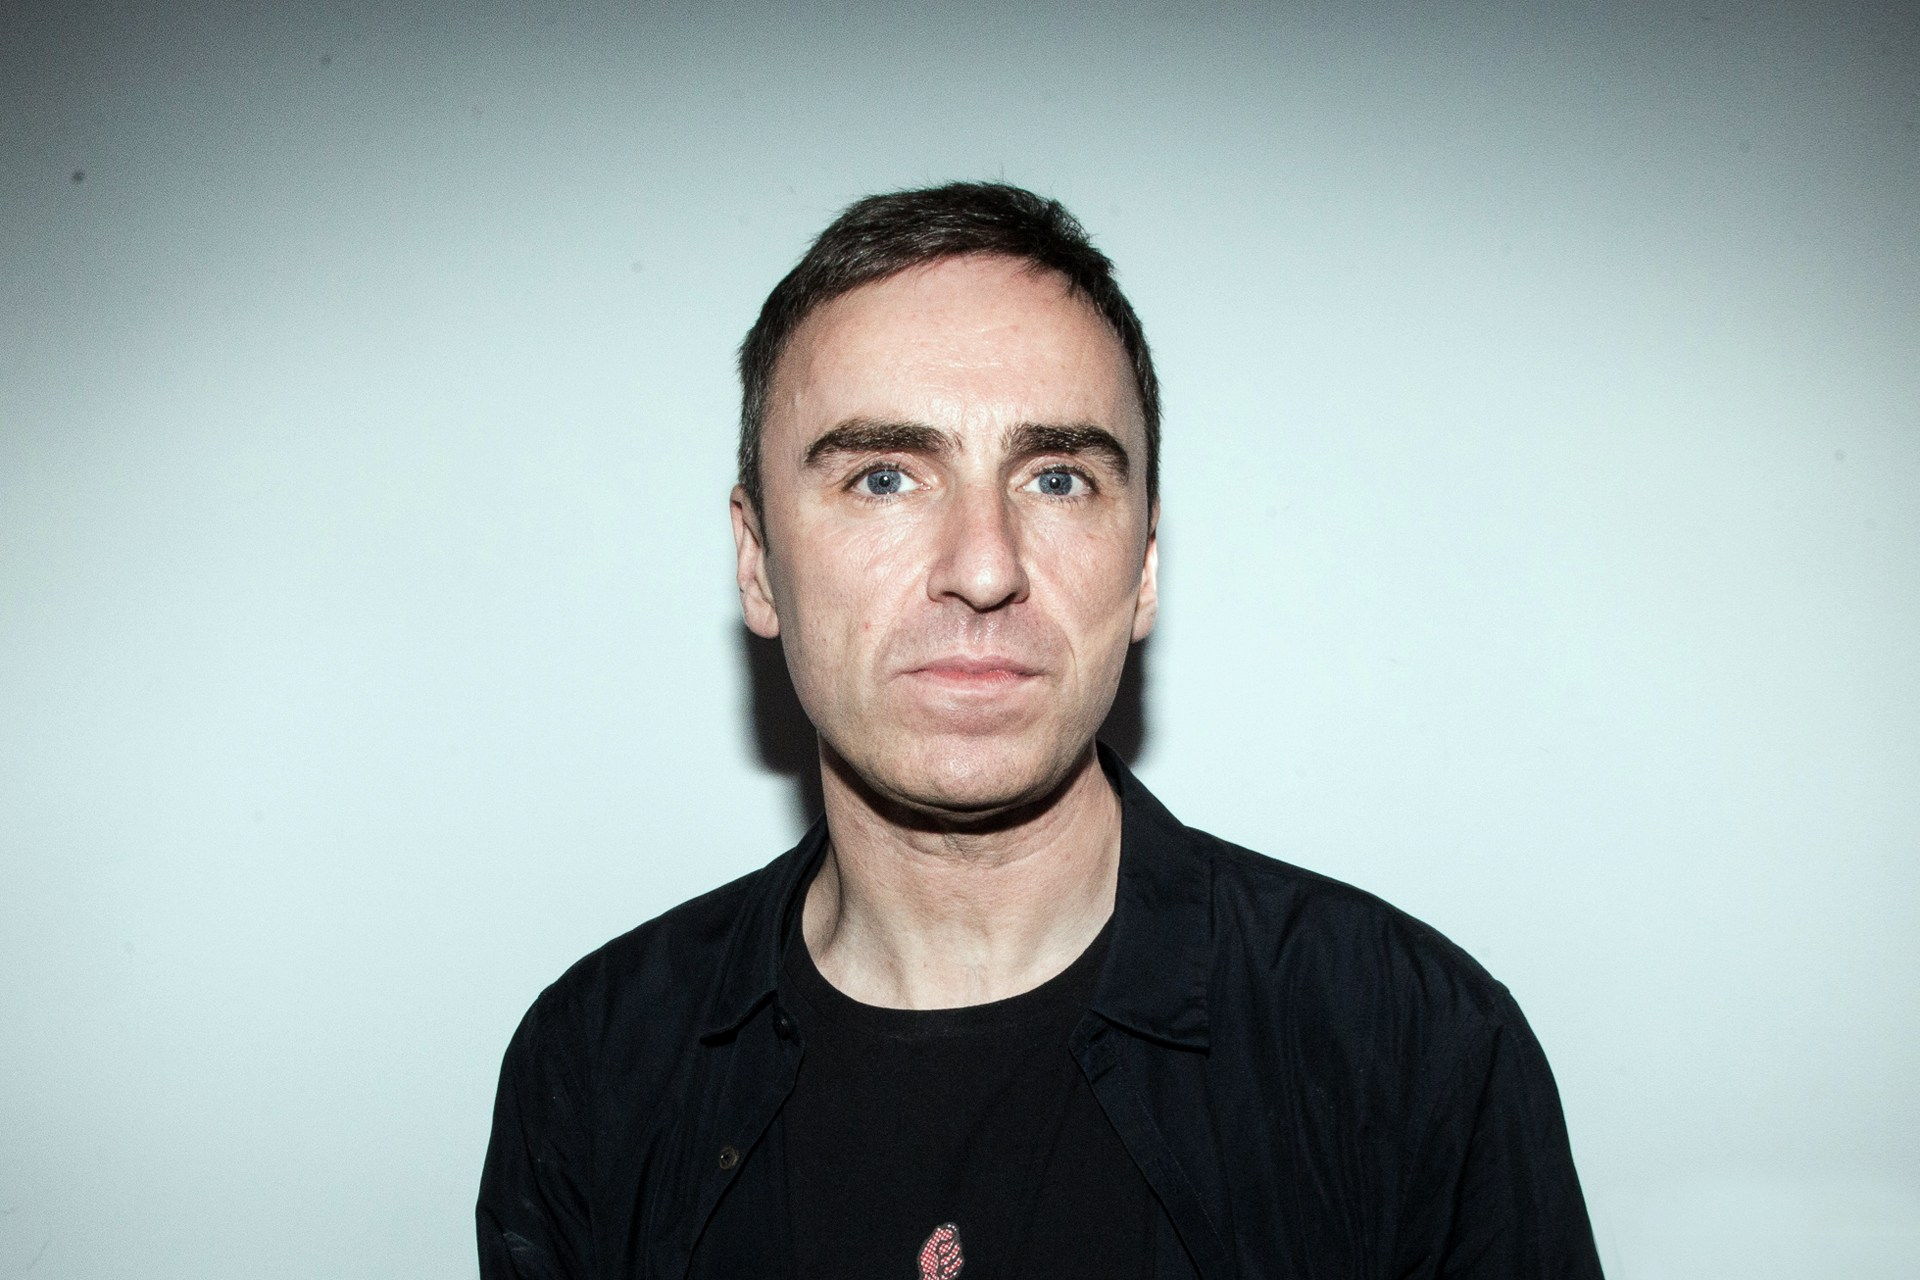 Raf Simons cleaned up at the CFDA Fashion Awards, winning both Womenswear and Menswear Designer of the Year Awards.